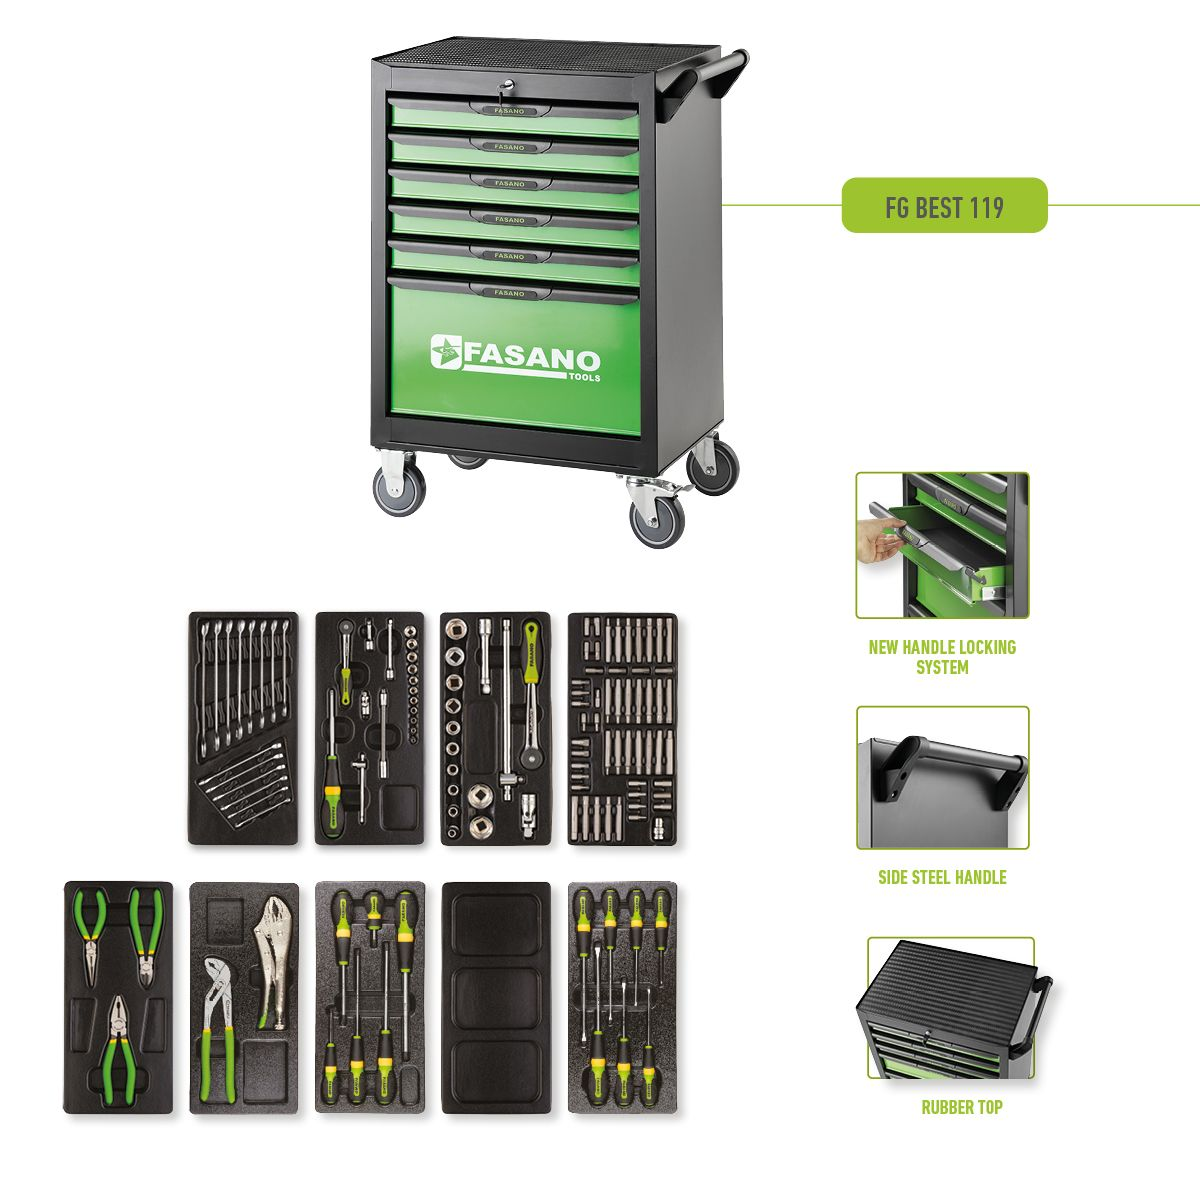 Tool Box FG 101 with 6 drawers and 119pcs assortment of professional tools